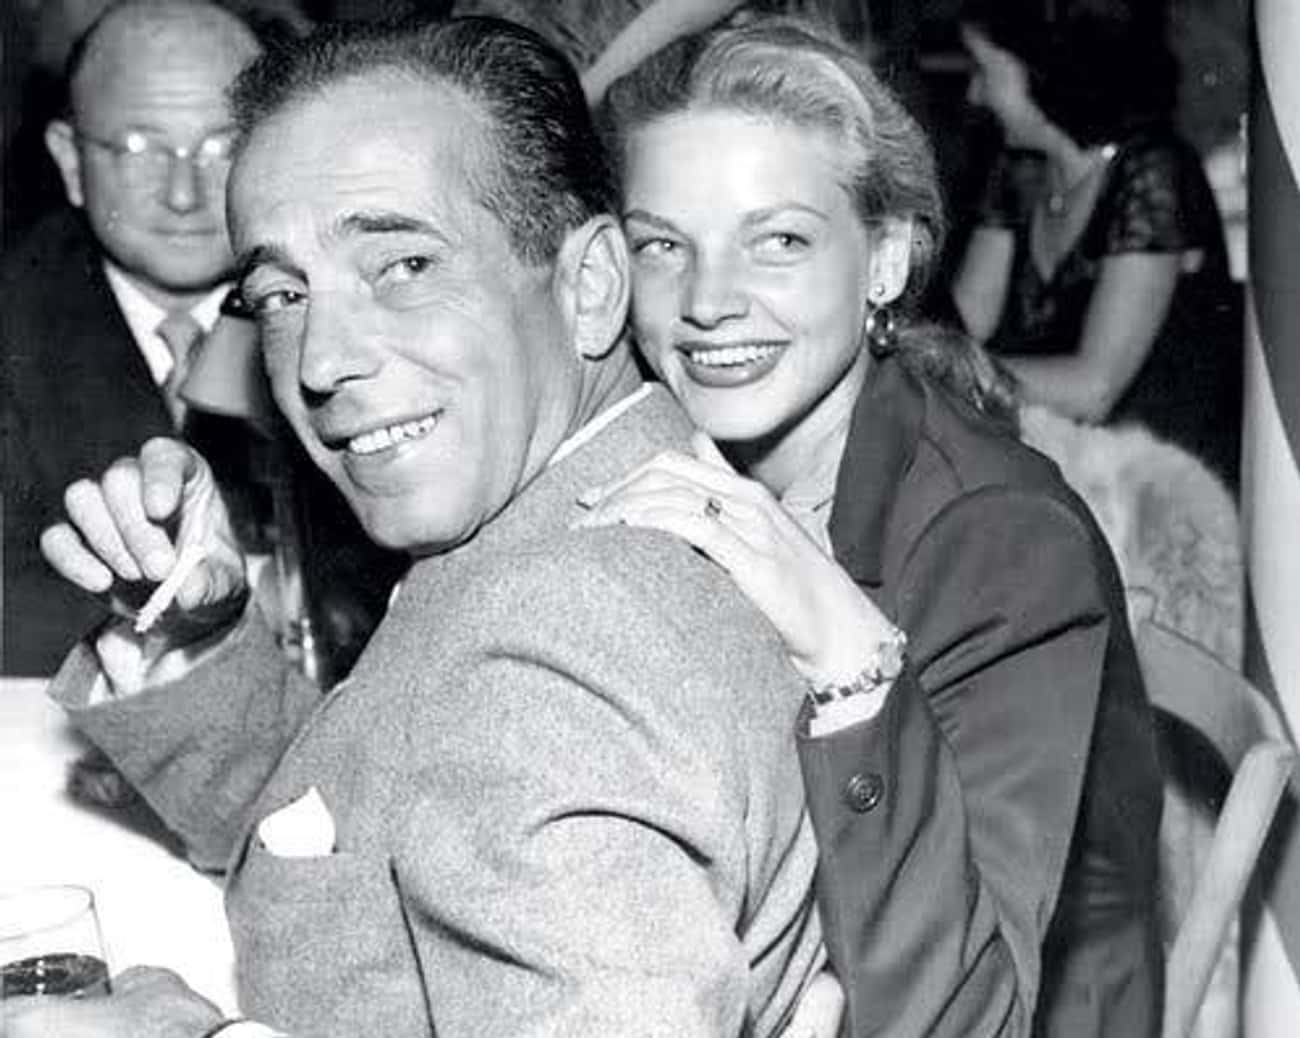 Lauren Bacall Allegedly Began An Affair With Frank Sinatra While Humphrey Bogart Was Dying Of Cancer